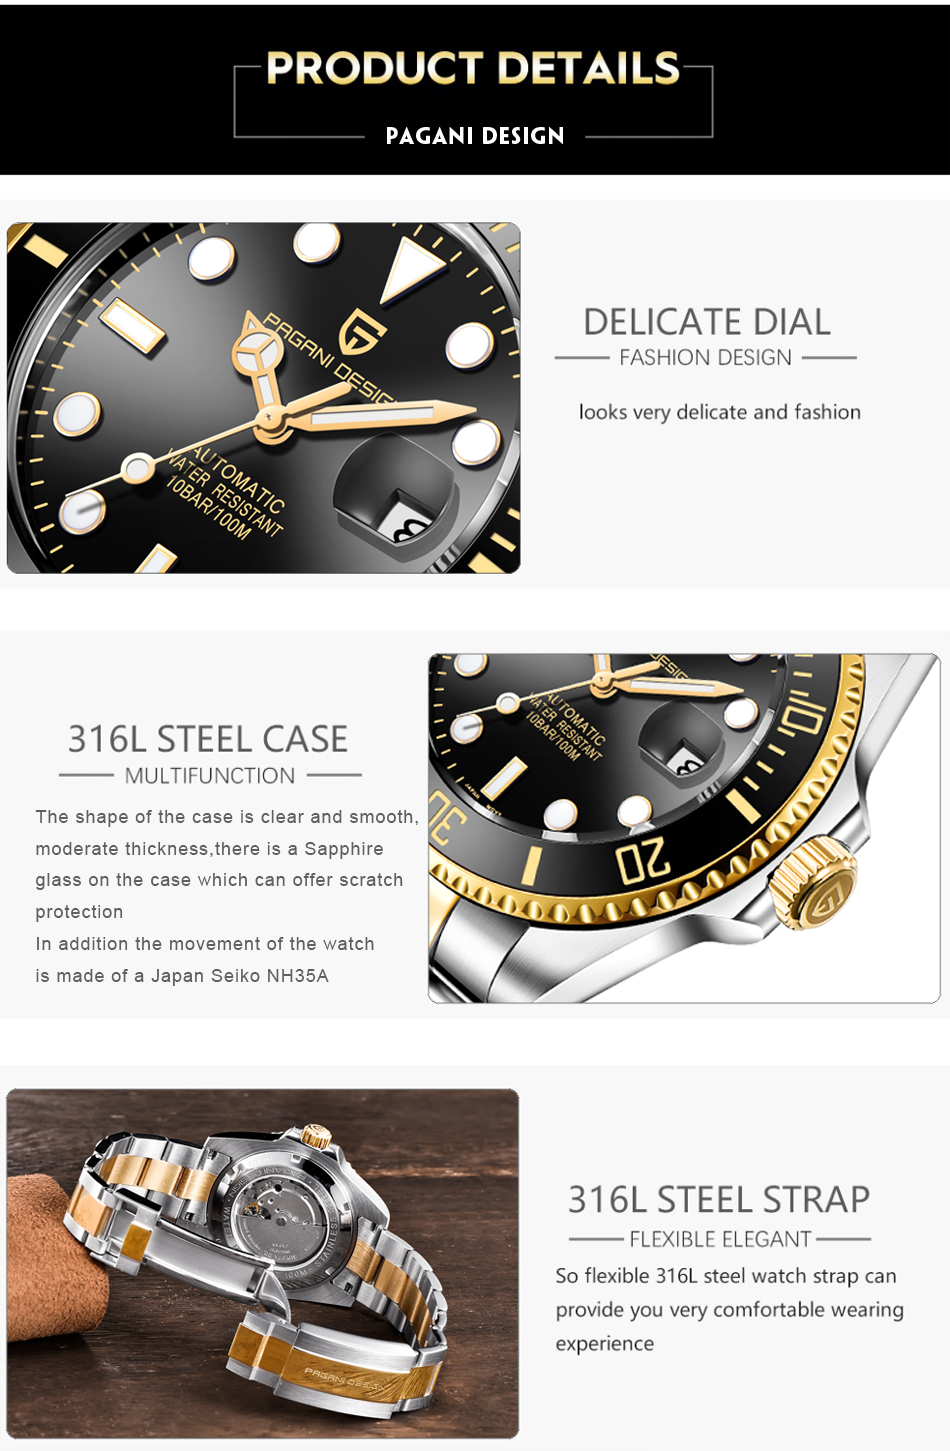 H1980adc064dc45f2961810ebb46fc41c4 PAGANI2019 Design Brand Luxury Men Watches Automatic Black Watch Men Stainless Steel Waterproof Business Sport Mechanical